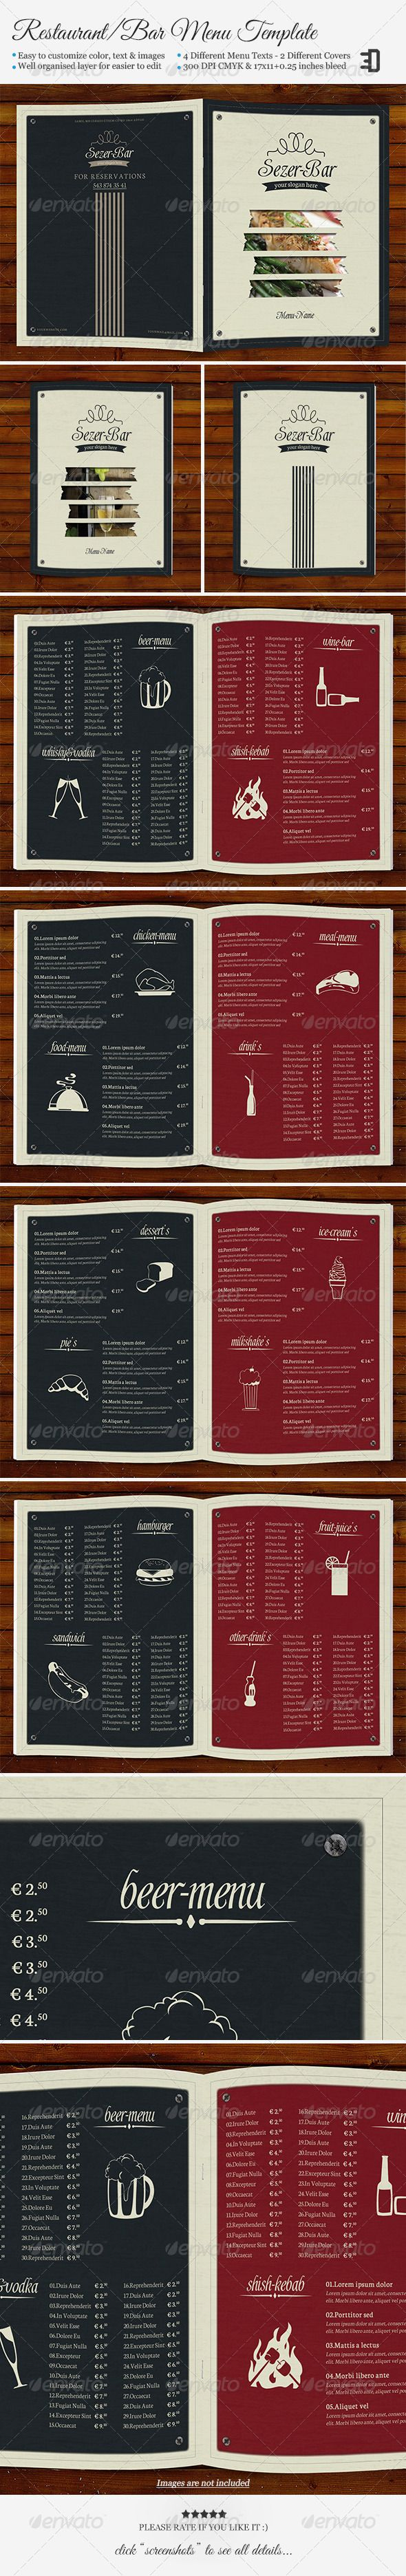 Restaurant/Bar Menu Template